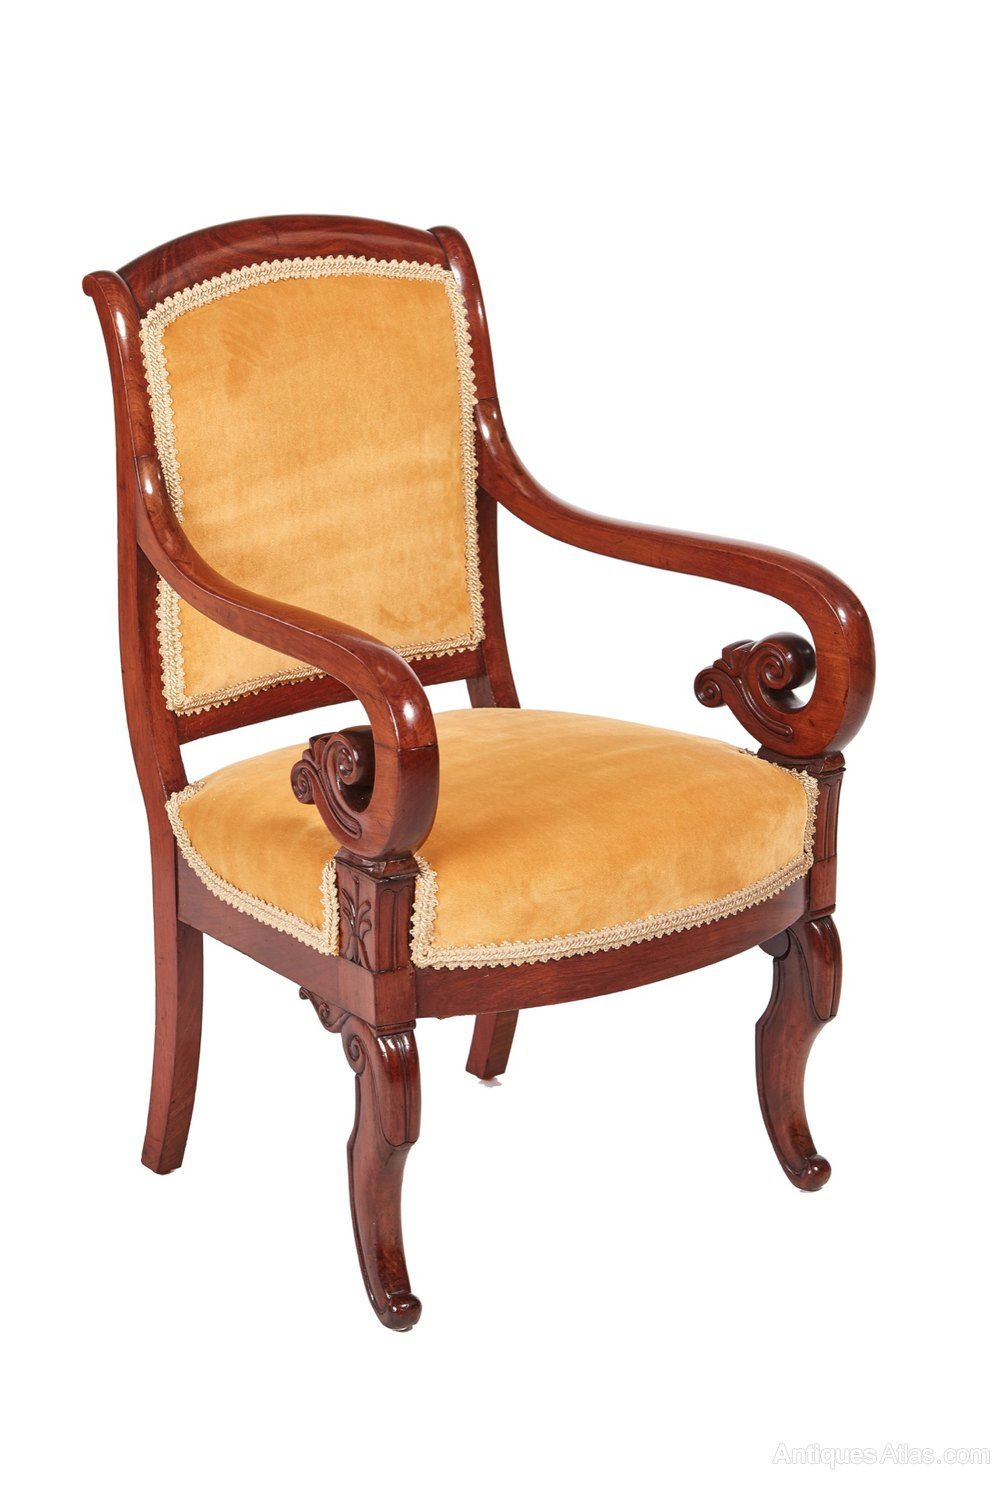 Quality Mahogany Regency Library Chair - Antiques Atlas - Quality Mahogany Regency Library Chair In 2018 Antique Library